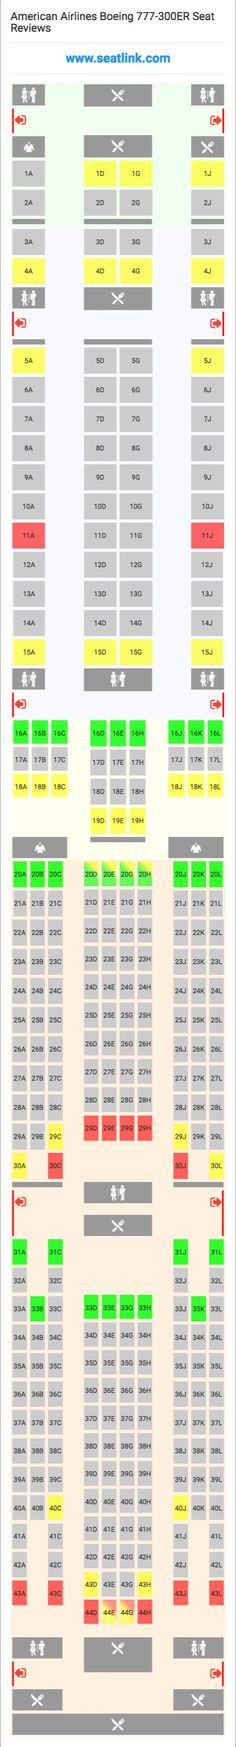 Air India Express Boeing 737 800 738 Seat Map Airline